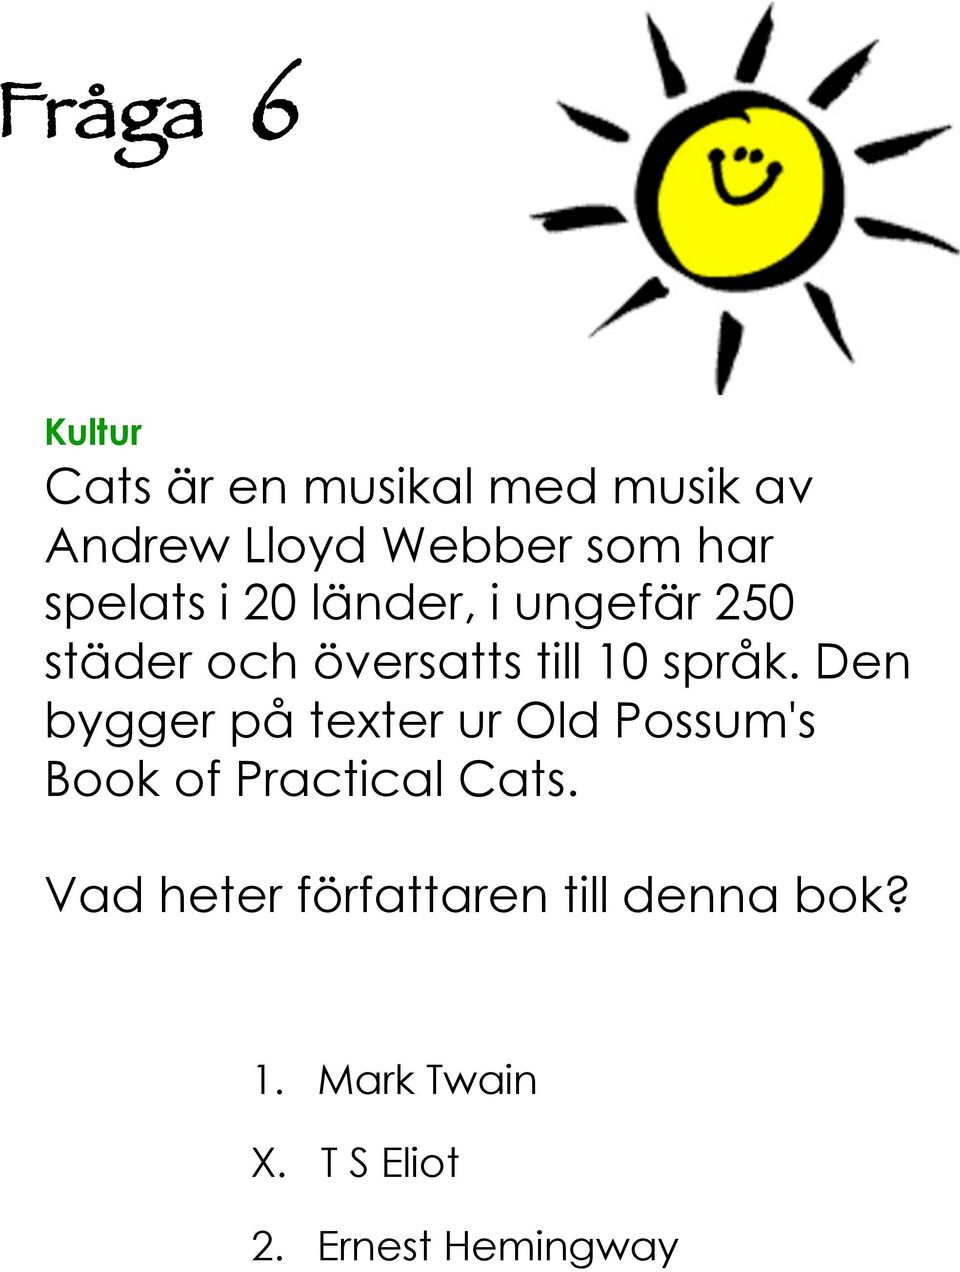 Den bygger på texter ur Old Possum's Book of Practical Cats.